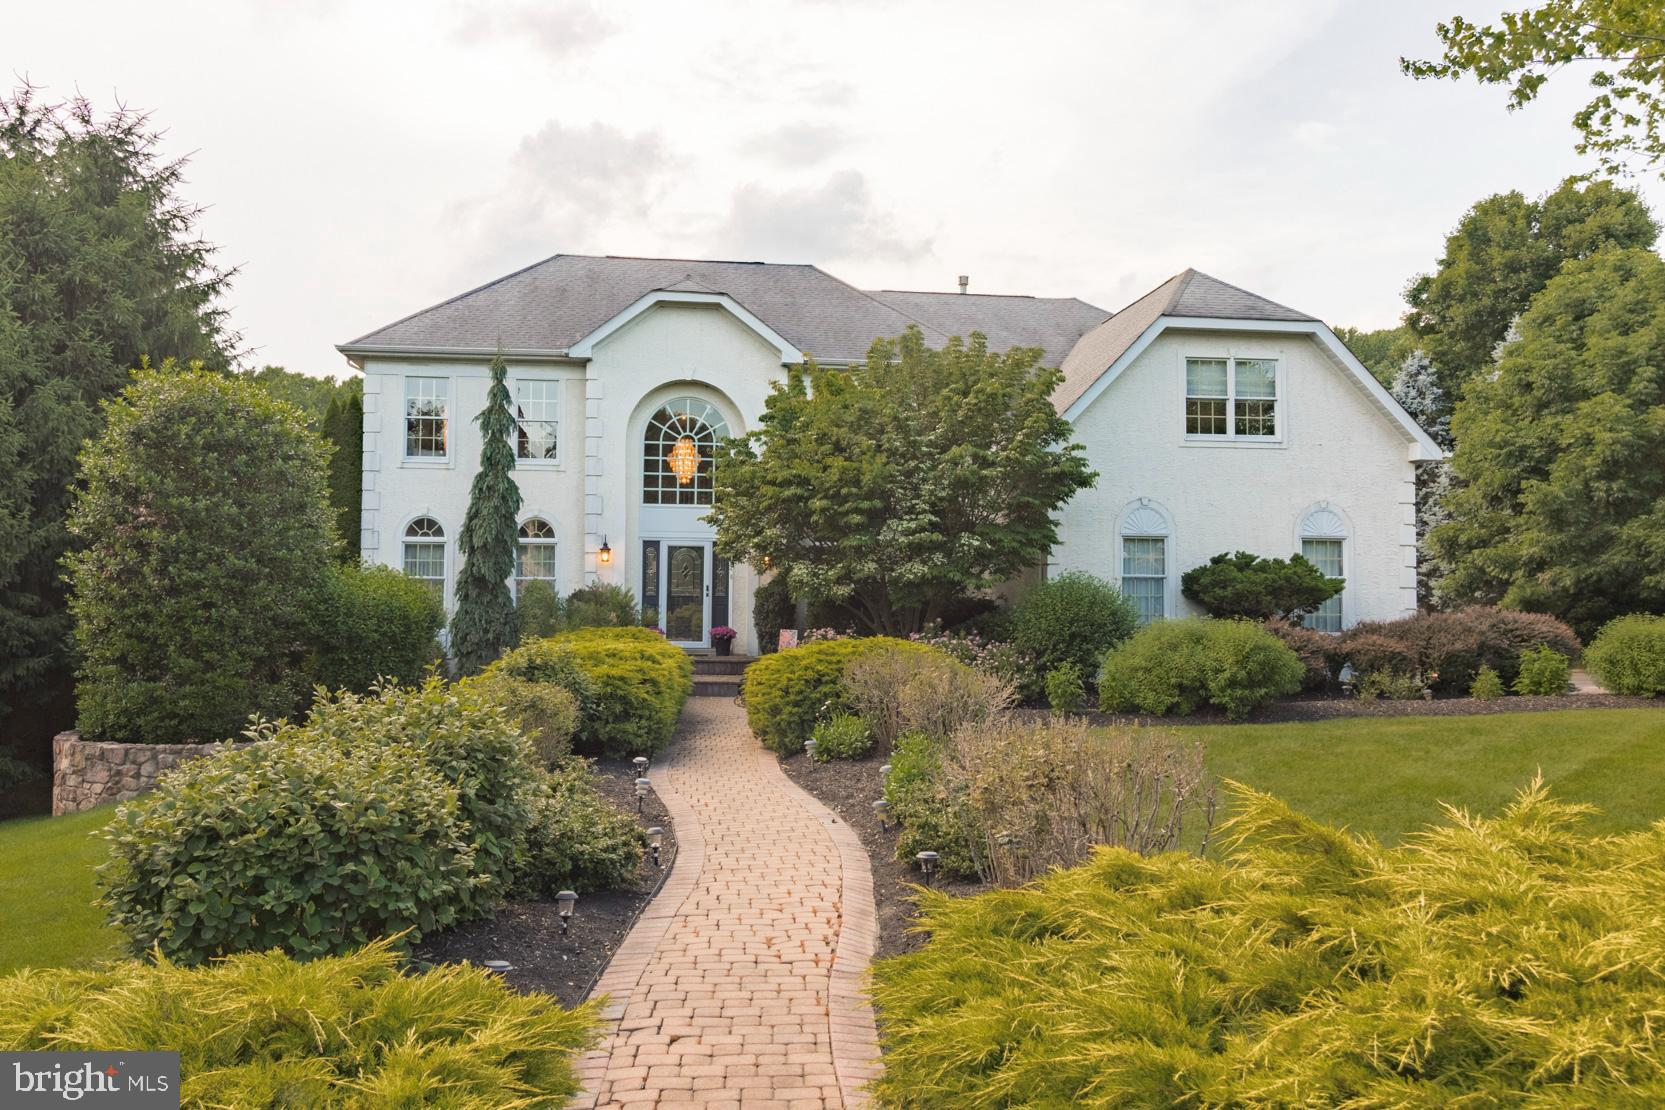 """Brandywine River Estates in West Chester, PA is an enclave of executive homes - thoughtfully planned and spaced. You enter the community through a long, beautifully landscaped, drive that makes you feel as though you are entering a private estate. Here this lovely 4 BR 3.1 bath, approximately 6,100 sq. ft., meticulously maintained home can be found! A manicured walkway leads to the dramatic 2-story foyer with a turned staircase and open views of a warm and inviting floor plan. The foyer is flanked by a Formal Dining Room with custom moldings and a Formal Living Room. The open plan continues to the rear of the home where a cozy 2-story Family Room with views of the private rear yard, brick fireplace and an expansive gourmet Kitchen can be found. The Kitchen features 42"""" cherry cabinets with crown molding and under-mount lighting, large center island, double wall ovens, Subzero refrigerator, Bosch dishwasher, granite counters and tons of counter space. There is also a large Breakfast area and a solarium with access to the rear deck and a level yard that backs up to beautiful open space. The main floor also features a laundry room with access to the 3-car garage as well as a professional office. The second level is highlighted by the Master Suite, which allows the owner to retreat in luxury to their own private space which contains a Sitting Room, 2 walk-in closets, and a spa-like Master Bath with Jacuzzi tub, tile shower, and dual vanities. The open hallway leads to 2 generous-sized guest bedrooms that share a Jack-and-Jill Bath. The 4th Bedroom contains an ensuite Full Bath. The fully finished lower level provides additional entertaining space adding over 1800 square feet of space with walk out access to the rear patio and hot tub. Established trees and landscaping accentuate this level lot which is backed by open space! Amazing location, minutes to downtown West Chester, hiking trails, grocery stores, orchards and easy access to all major routes! Be sure to check ou"""